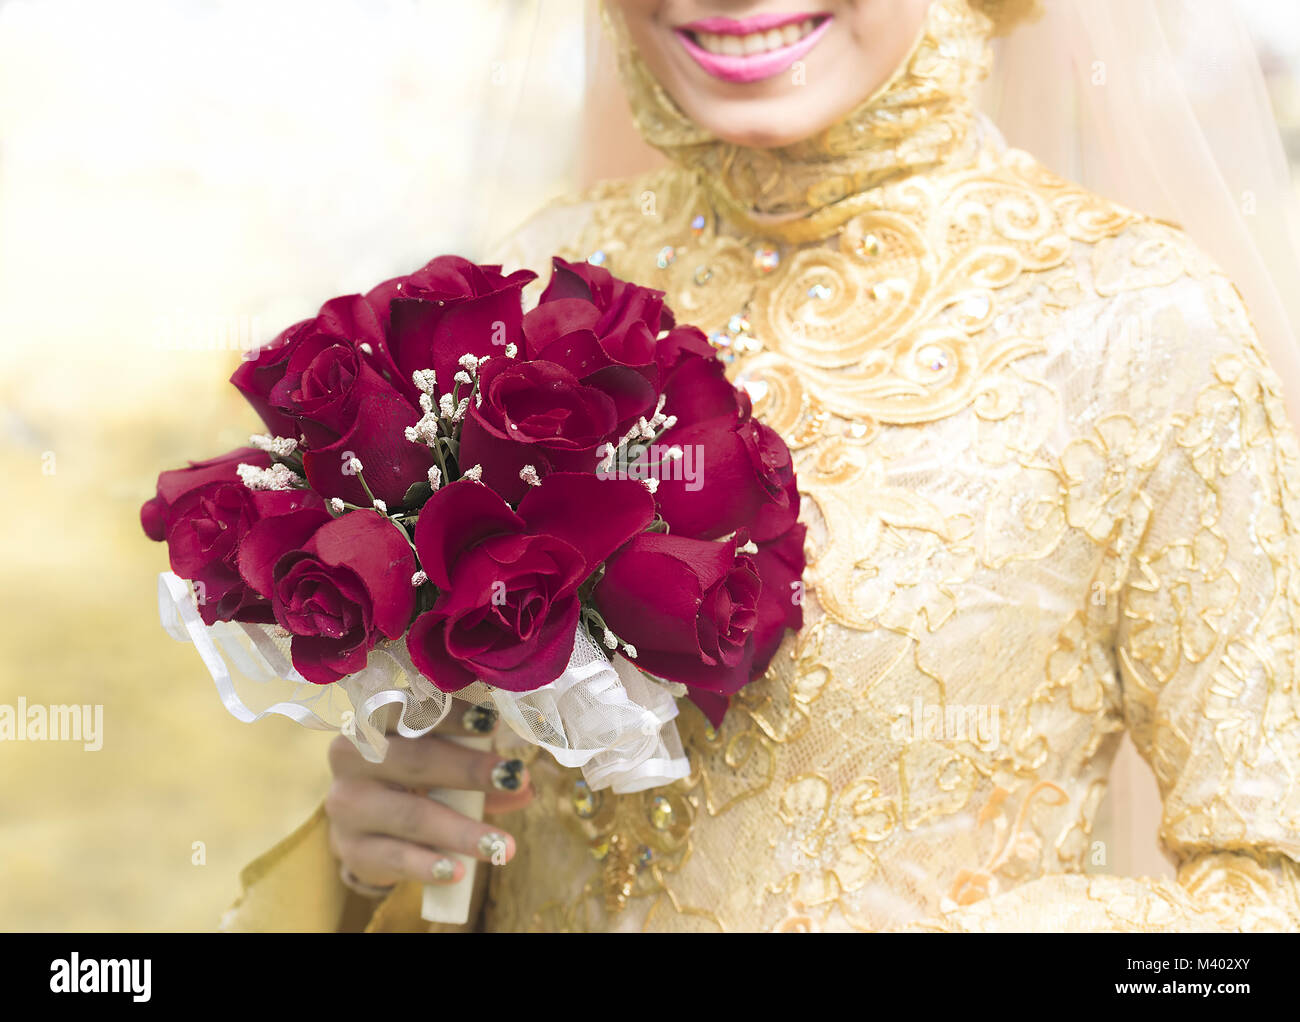 Muslim bride holding a wedding bouquet in her hand, a bunch of red roses flower - Stock Image